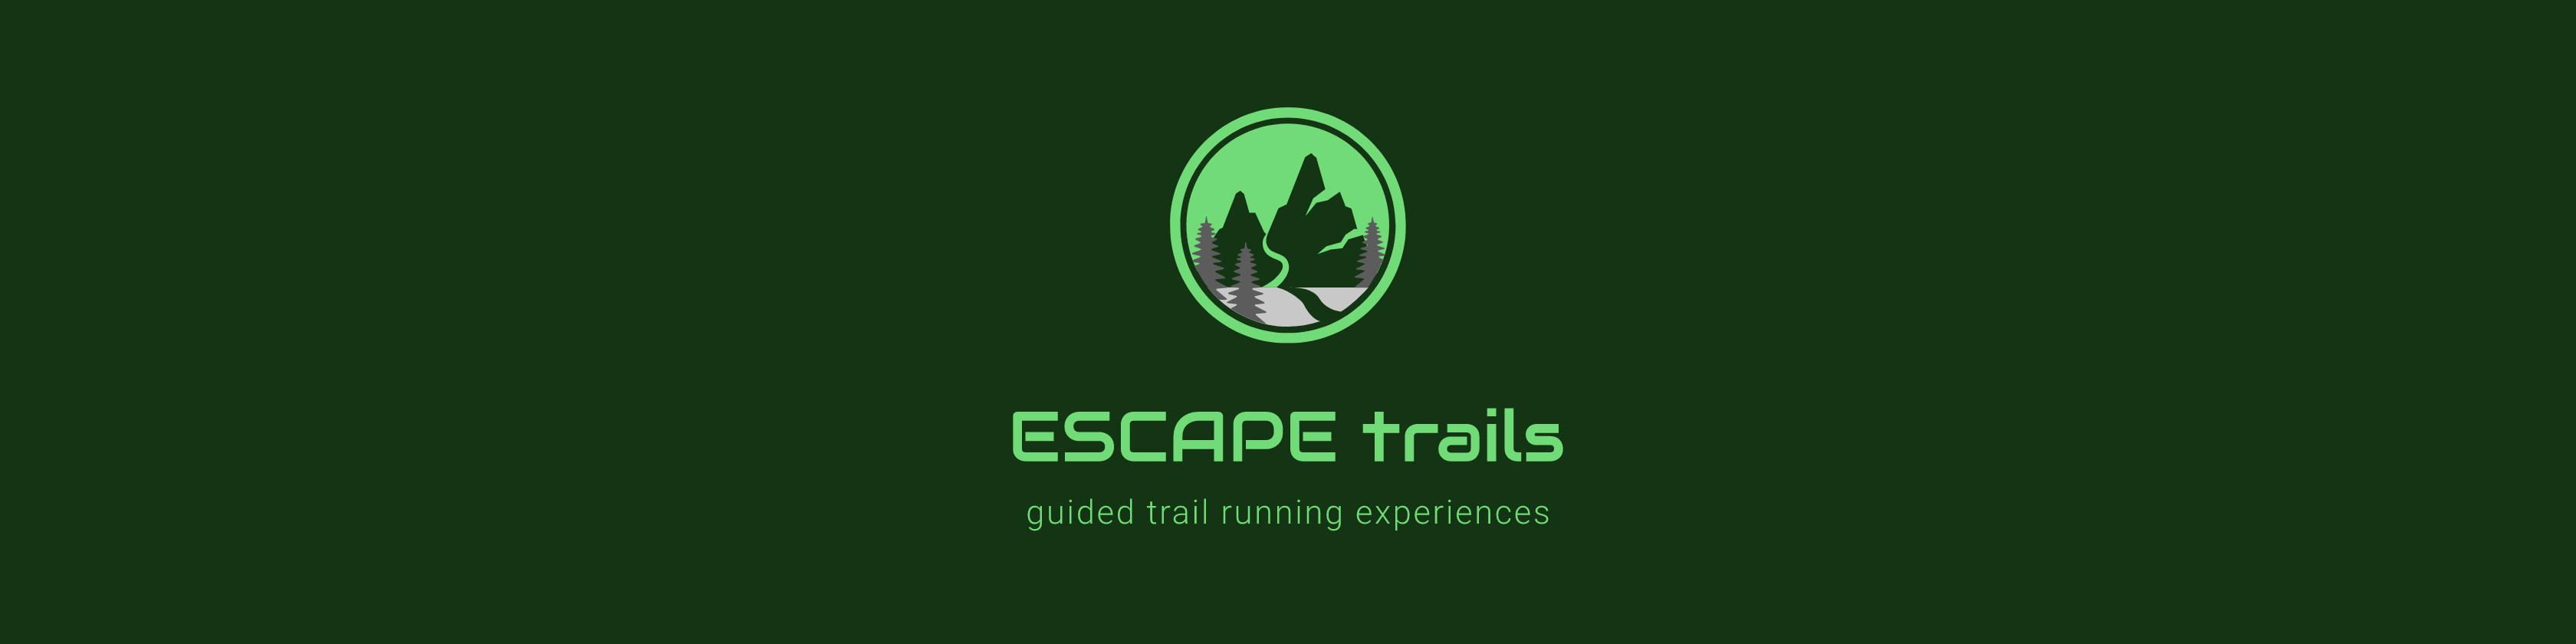 ESCAPE trails